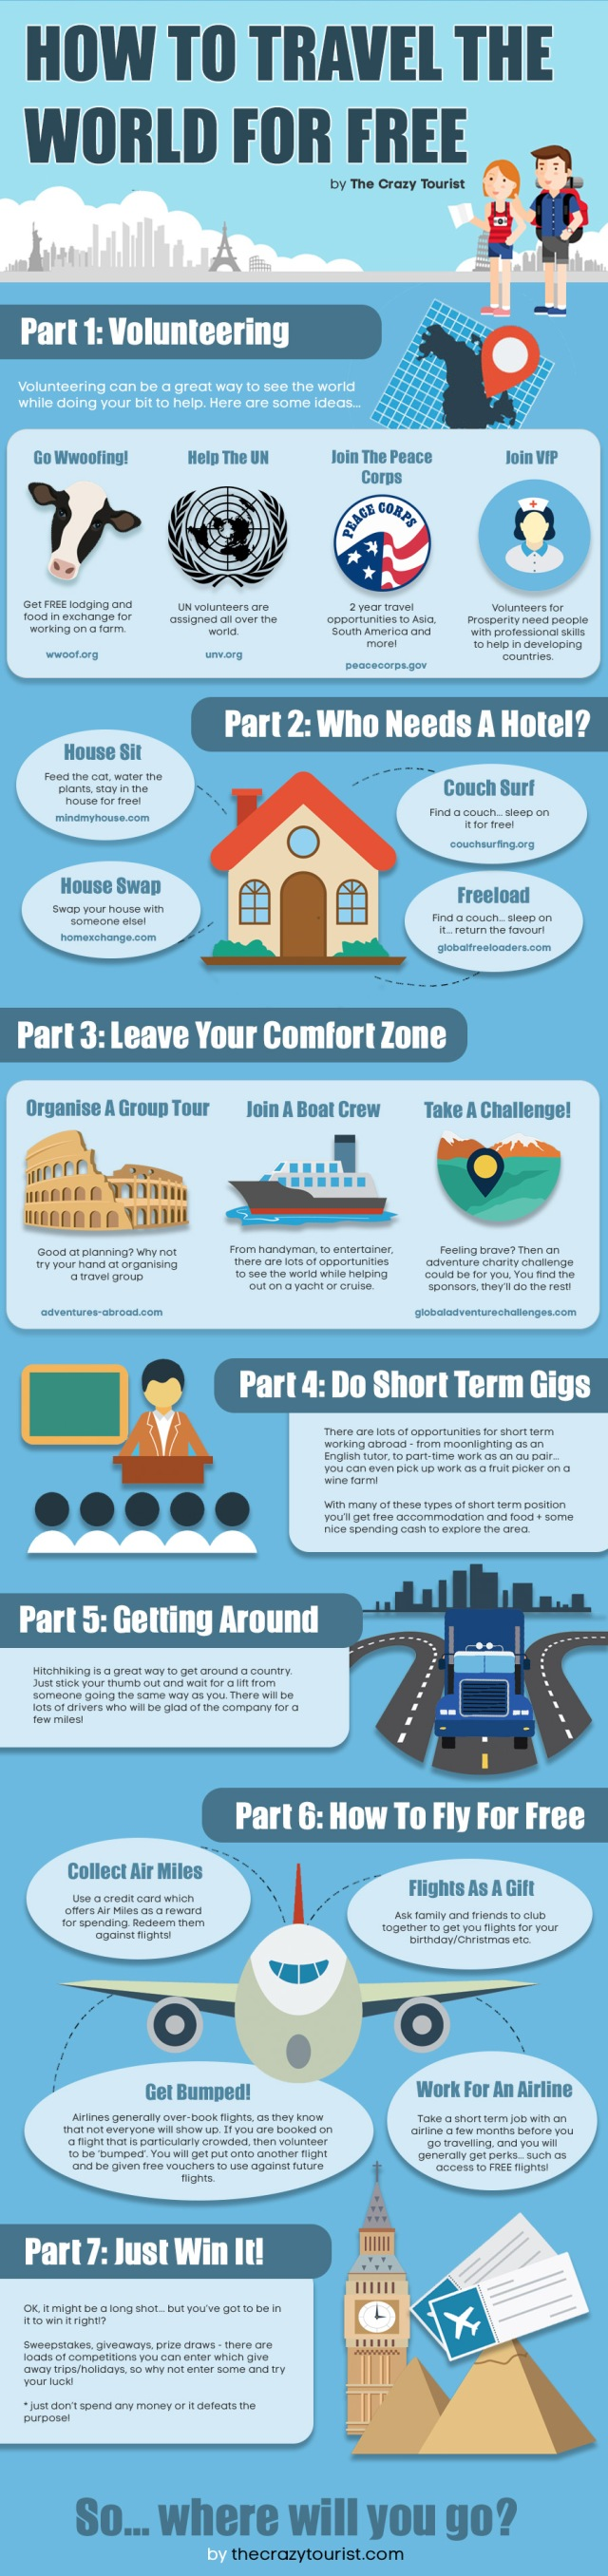 travel-the-world-for-free-infographic (1)